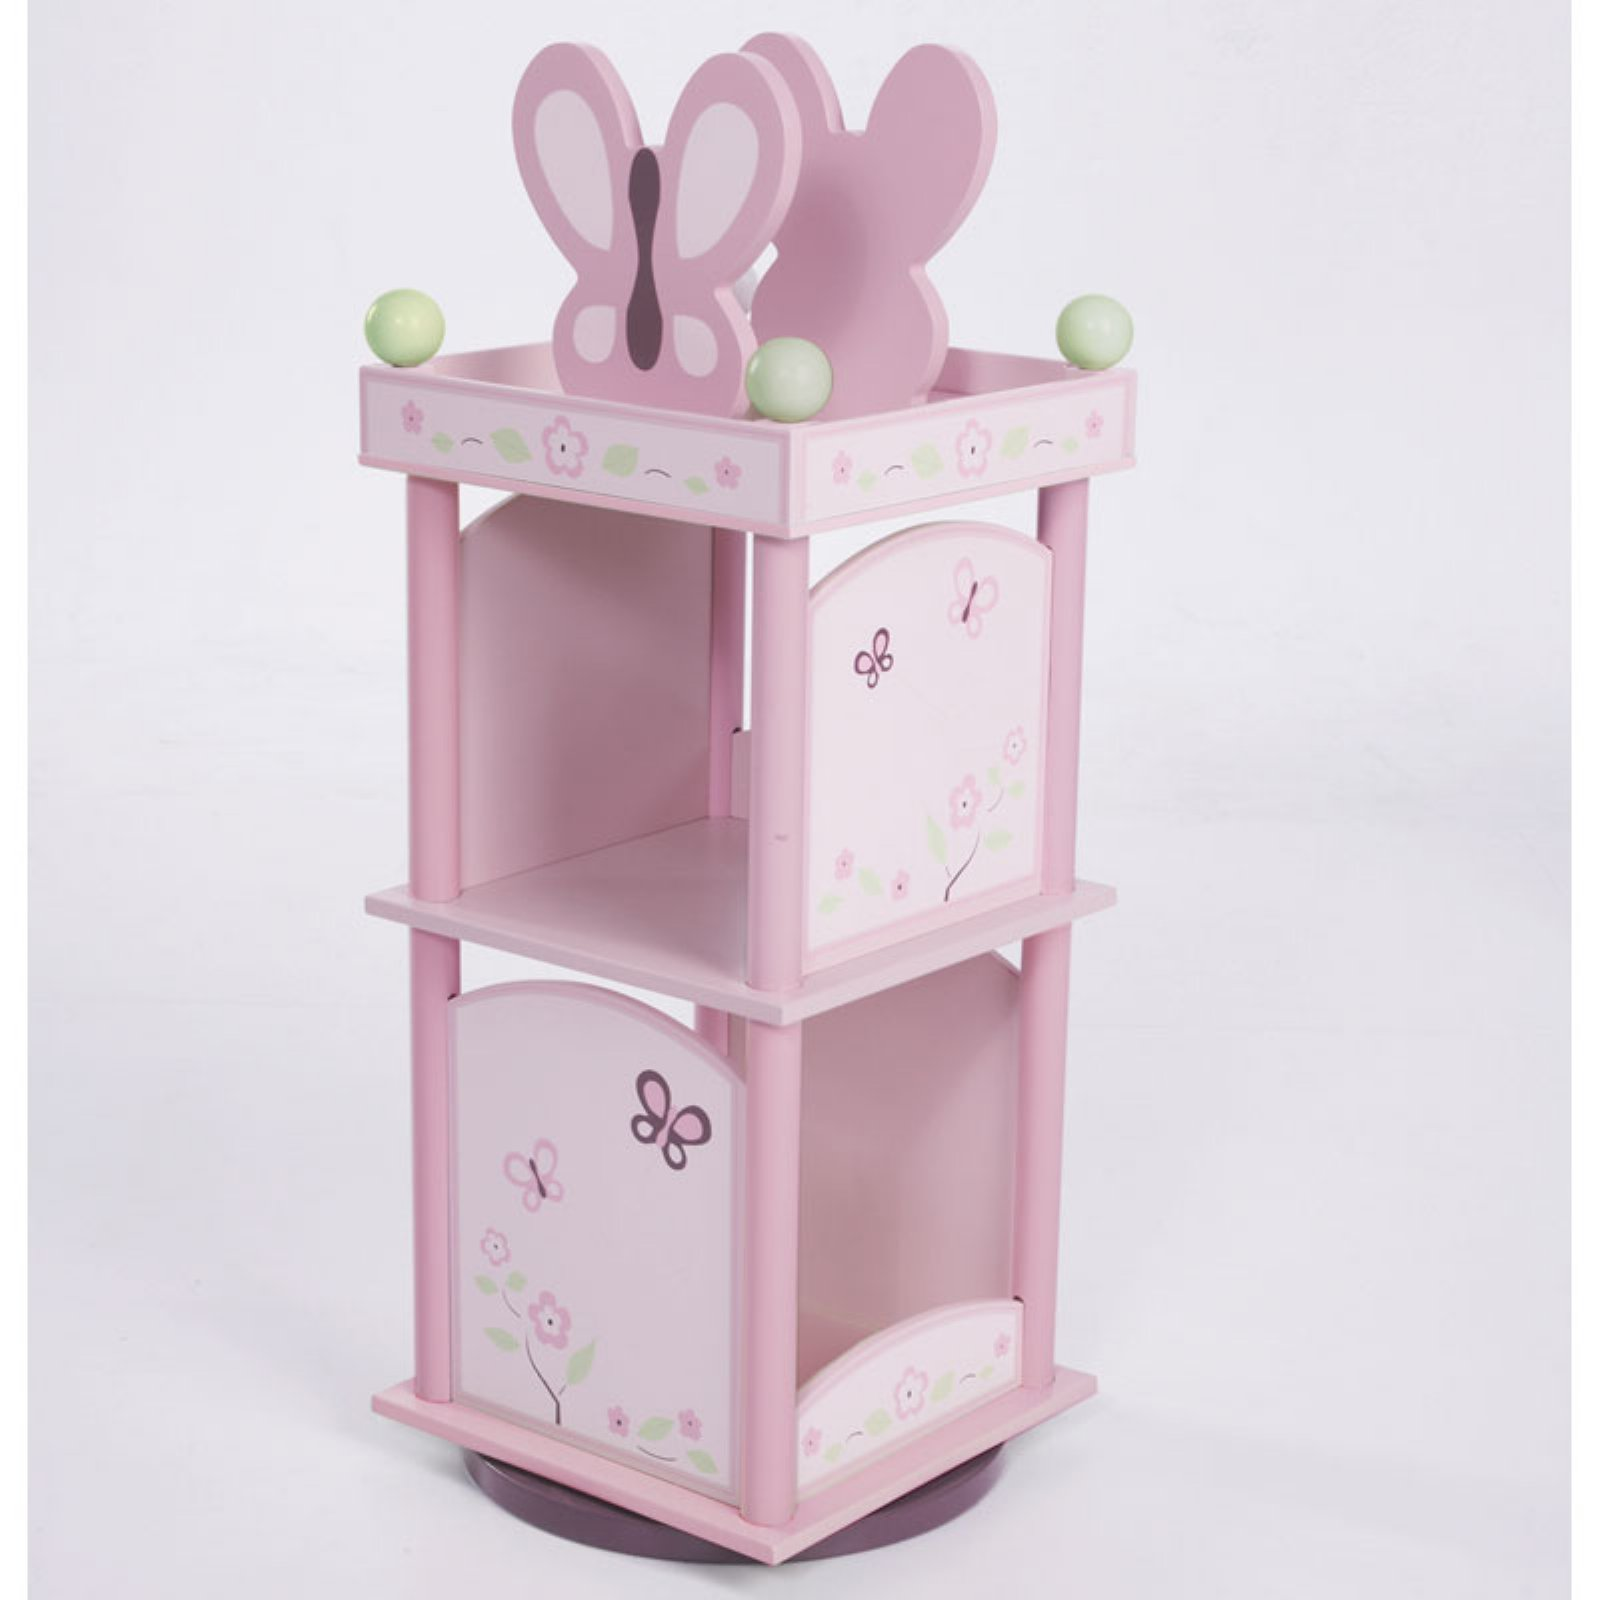 Wildkin Sugar Plum Revolving Bookcase